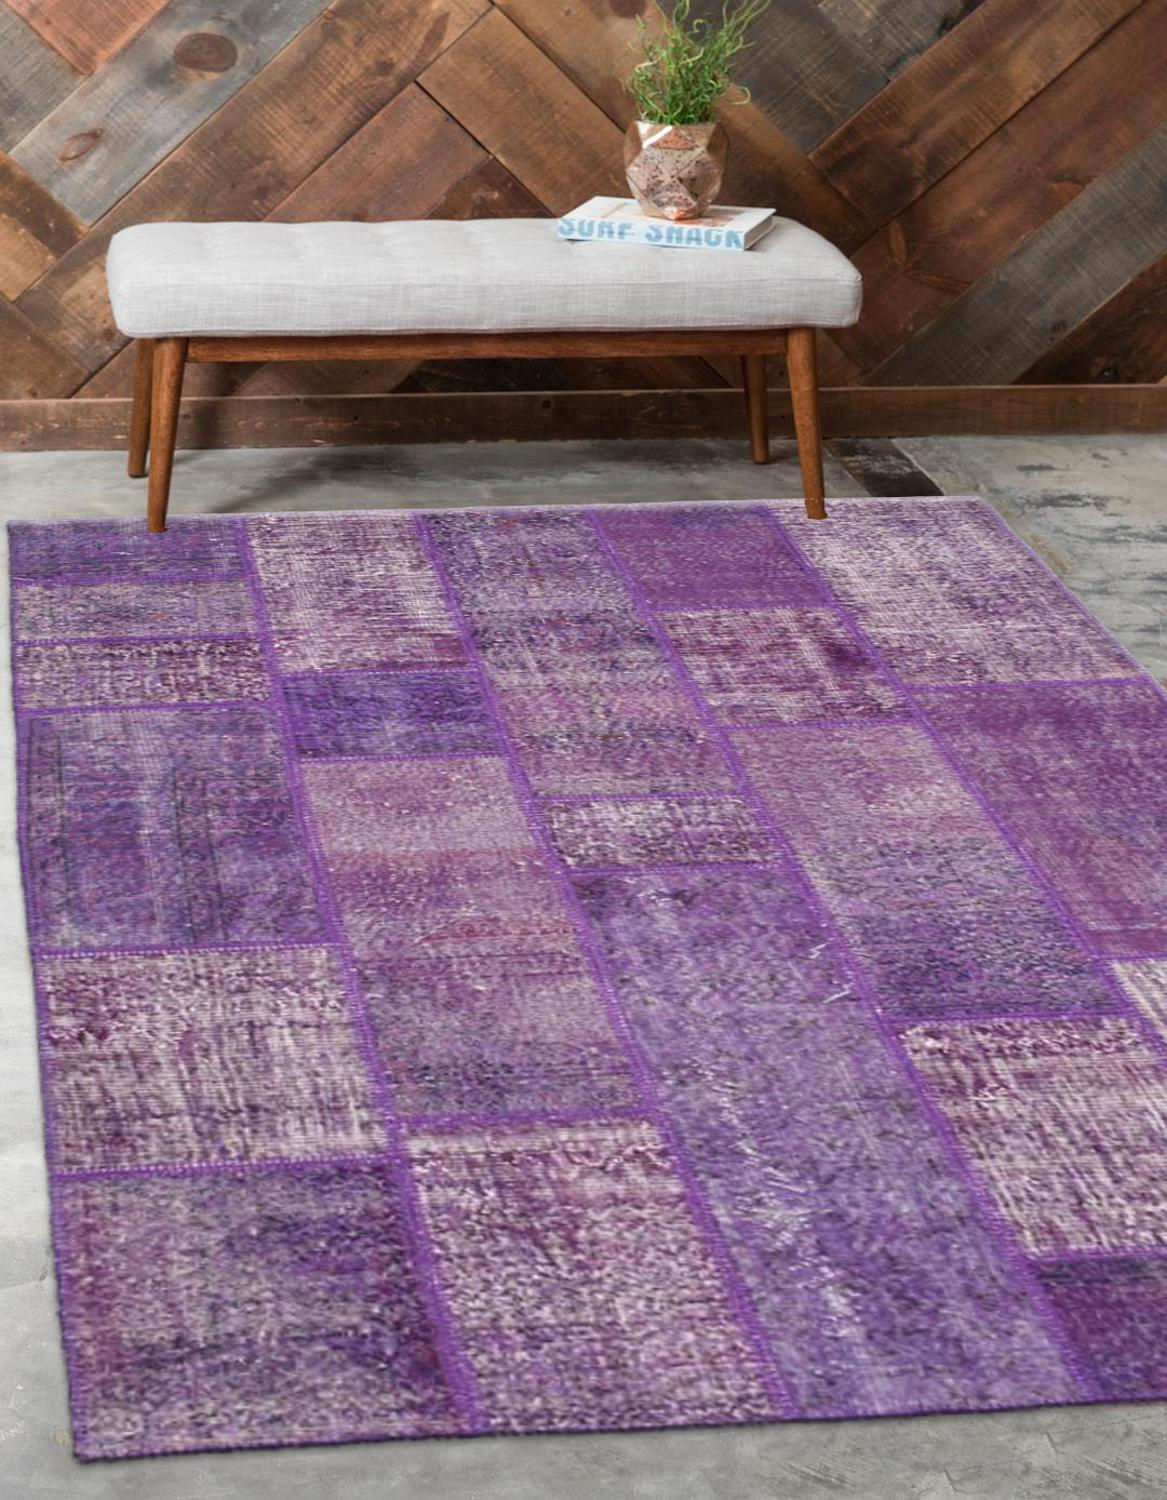 Else Purple Anatolian Patchwork Rug Turkish Handmade Organic Area Rug Decorative Home Decor Wool Patchwork Rug Carpet